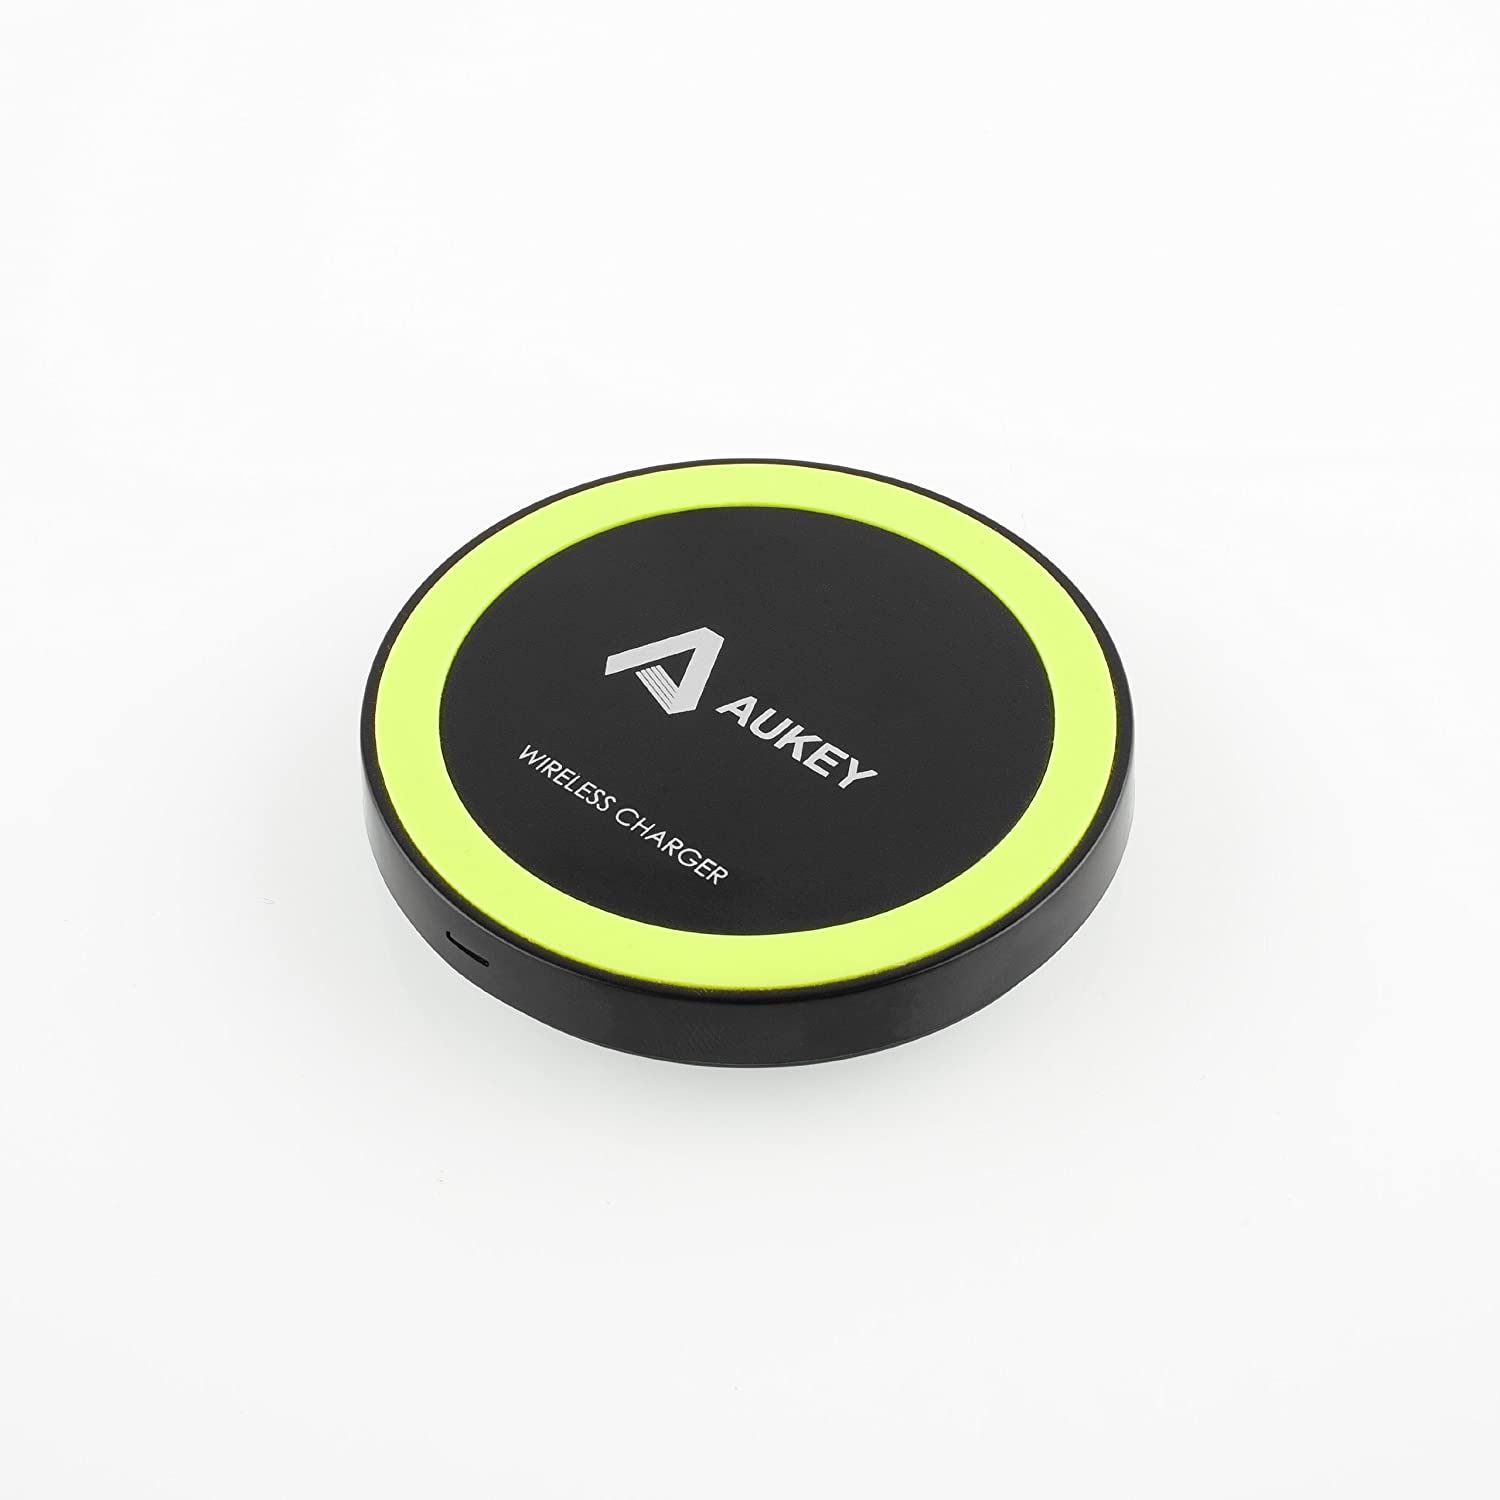 Aukey   Qi充電パッド ワイヤレス充電パッド 無接点充電パッド 「Qi」準拠ワイヤレスチャージャー  置くだけ充電 非接触充電 無線充電器(円形)(Nexus5/7 /4;Samsung S4,S3,I510;LG Optimus LTE2,VS920;HTC Rezound, Incredible 2, Incredible 4 LTE;Motorola Droid 4; Nokia Lumia 920;Fujitsu docomoand F-10D,F-09D,F-03D,F-03D Girls';Sharp docomo SH-07D,SH-04D,SH-02D,SH-13C;NEC docomo N-01D;Panasonic docomo P-06DなどApple&Android機器に対応) LC-M1